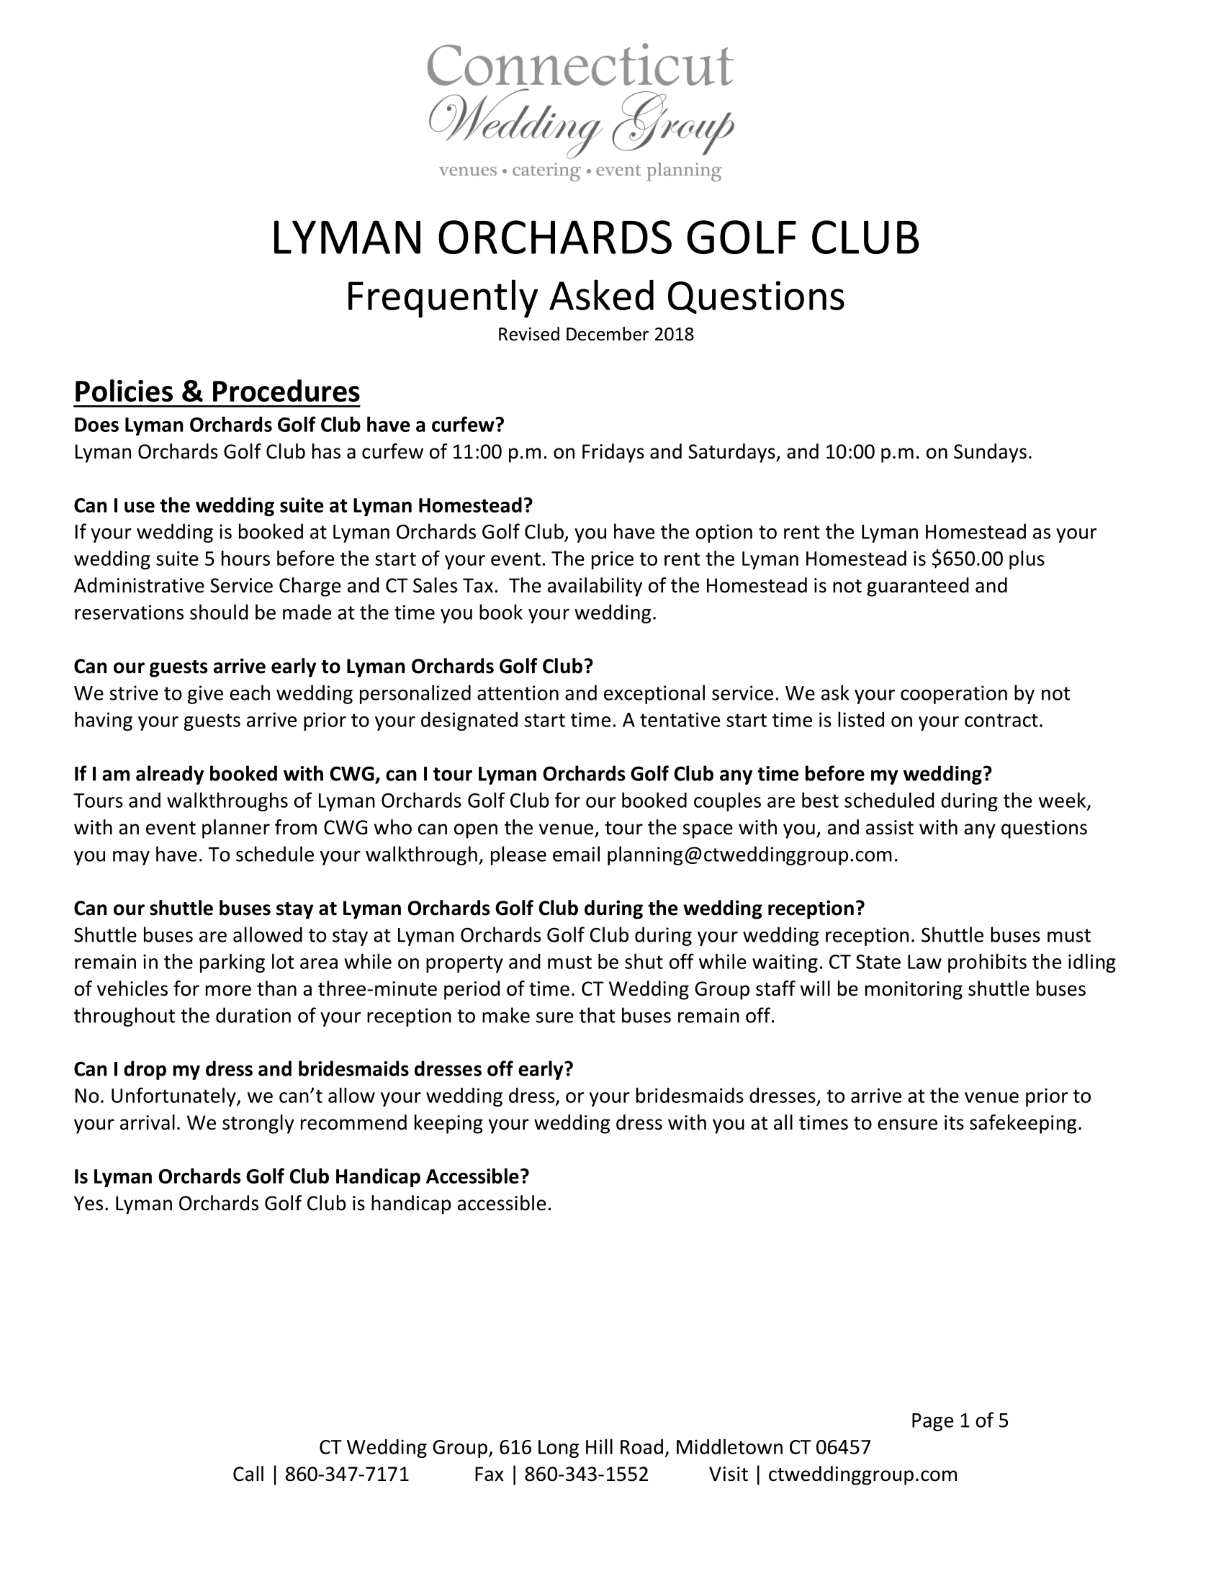 Frequently-Asked-Questions-Lymans-December-2018-1